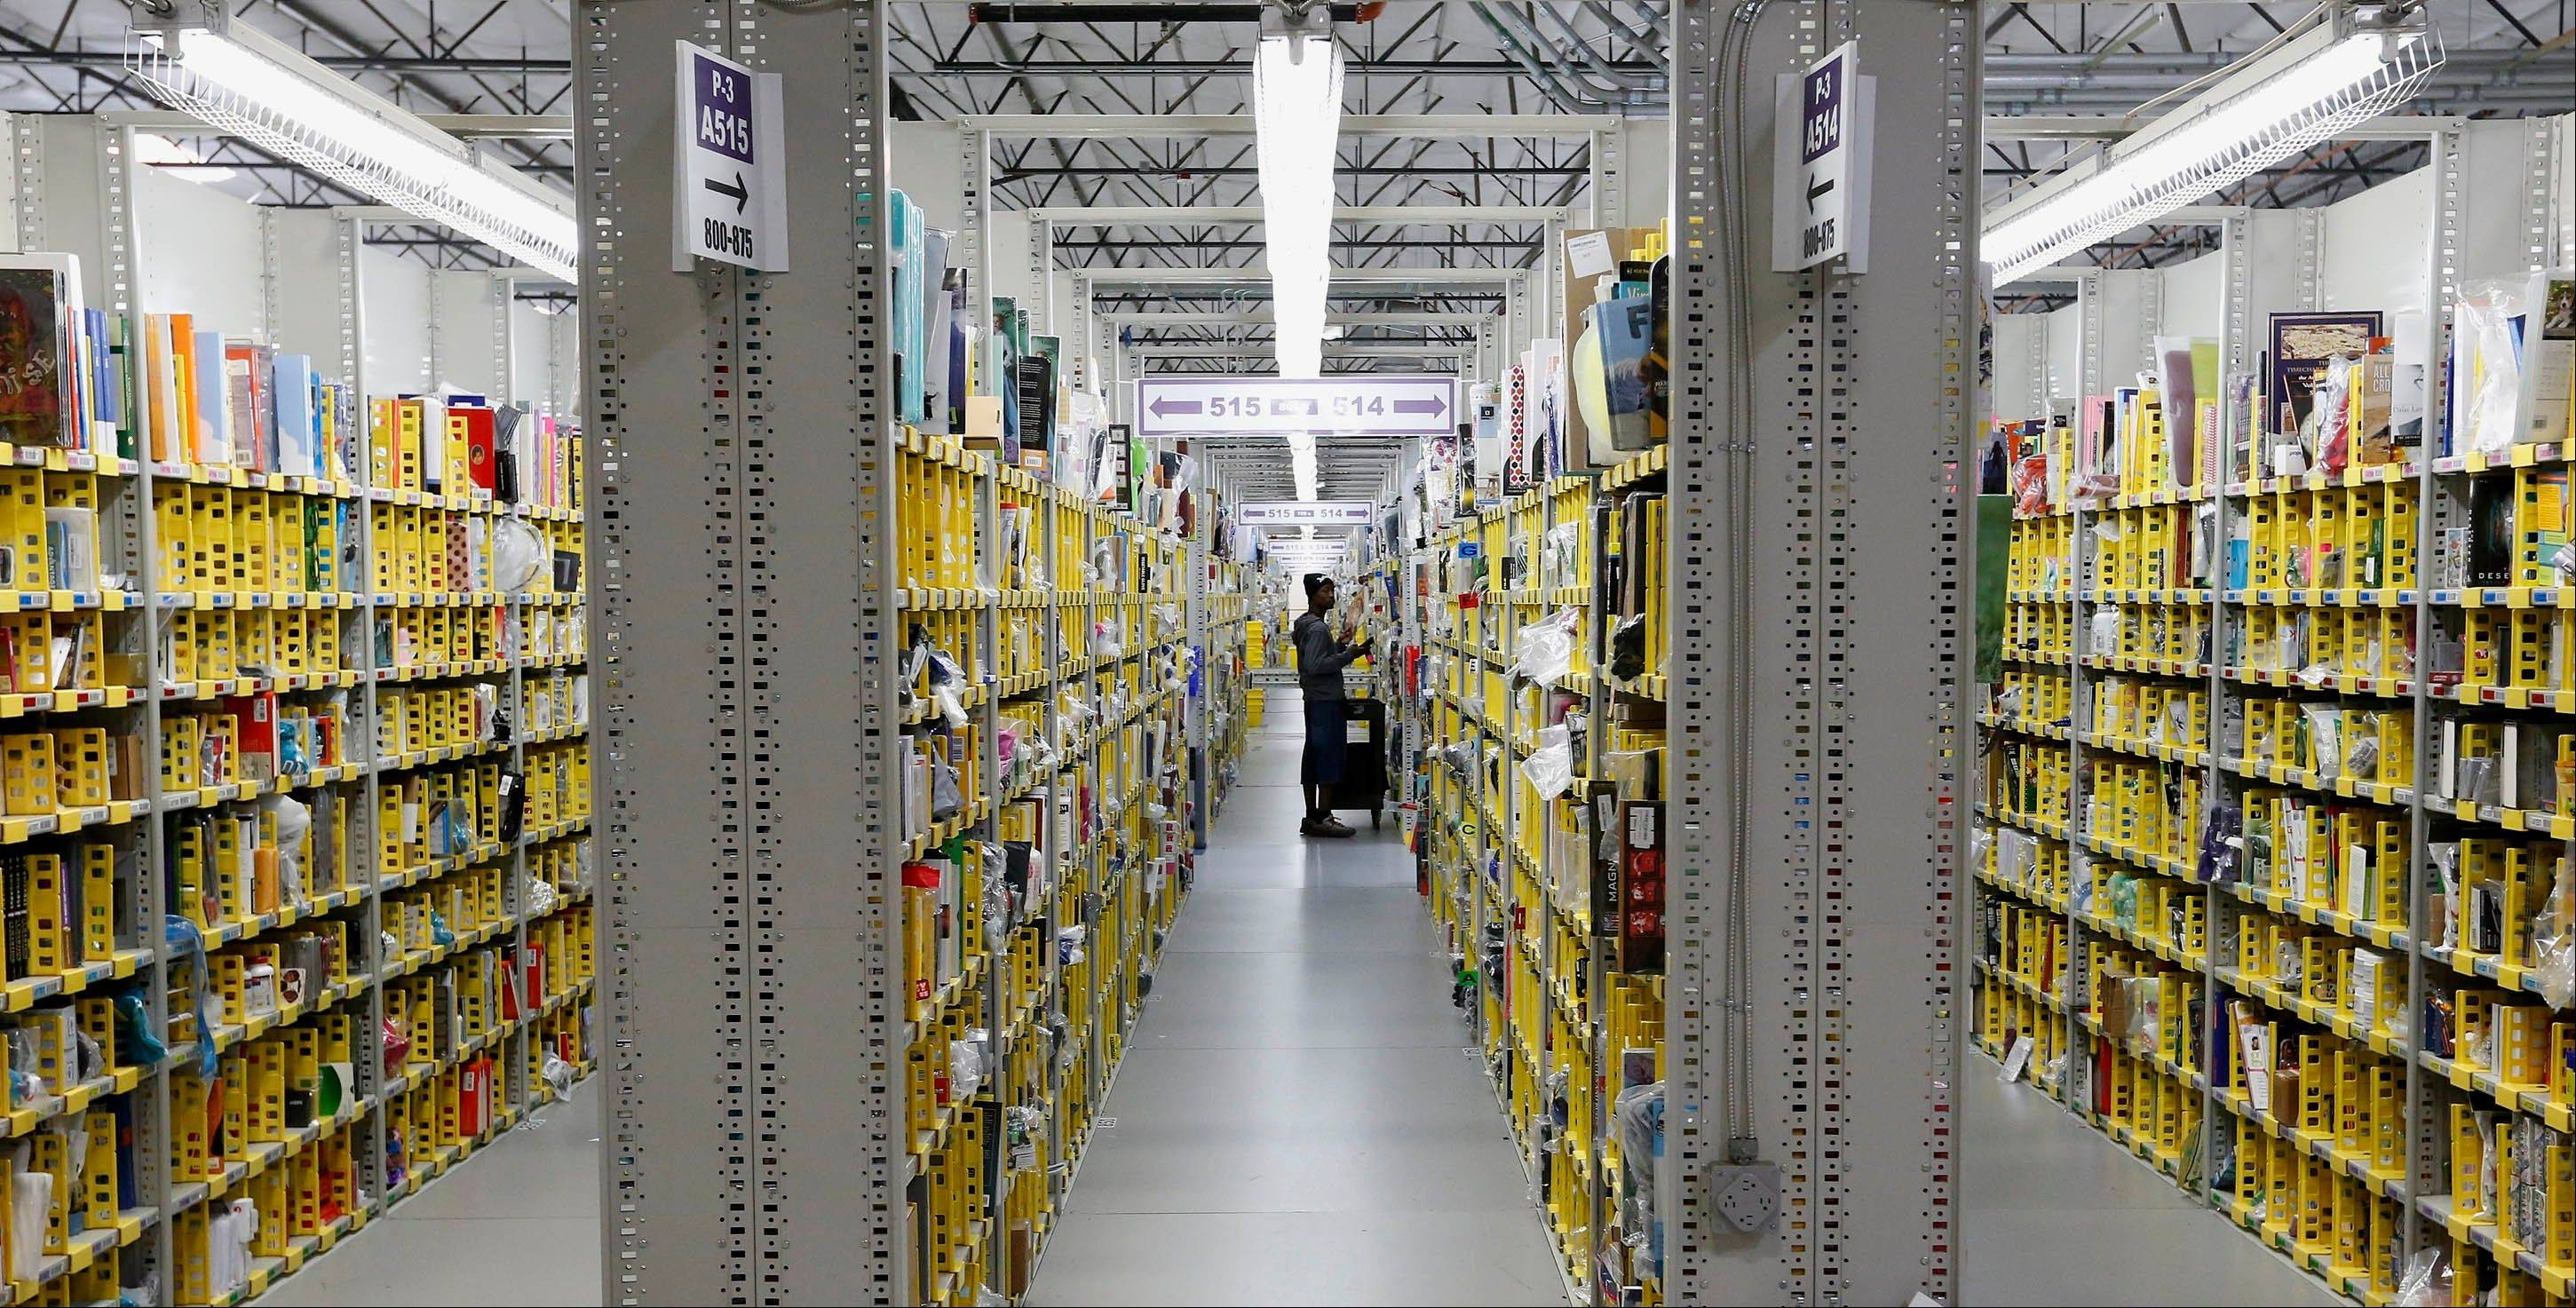 An Amazon.com employee stocks a shelf at an Amazon.com Fulfillment Center on �Cyber Monday.� Shoppers waited until the last possible minute to buy presents this year, even online. The late surge sent holiday retail sales up 3.5 percent, which ultimately was good news for retailers but caught shippers UPS and FedEx unprepared.